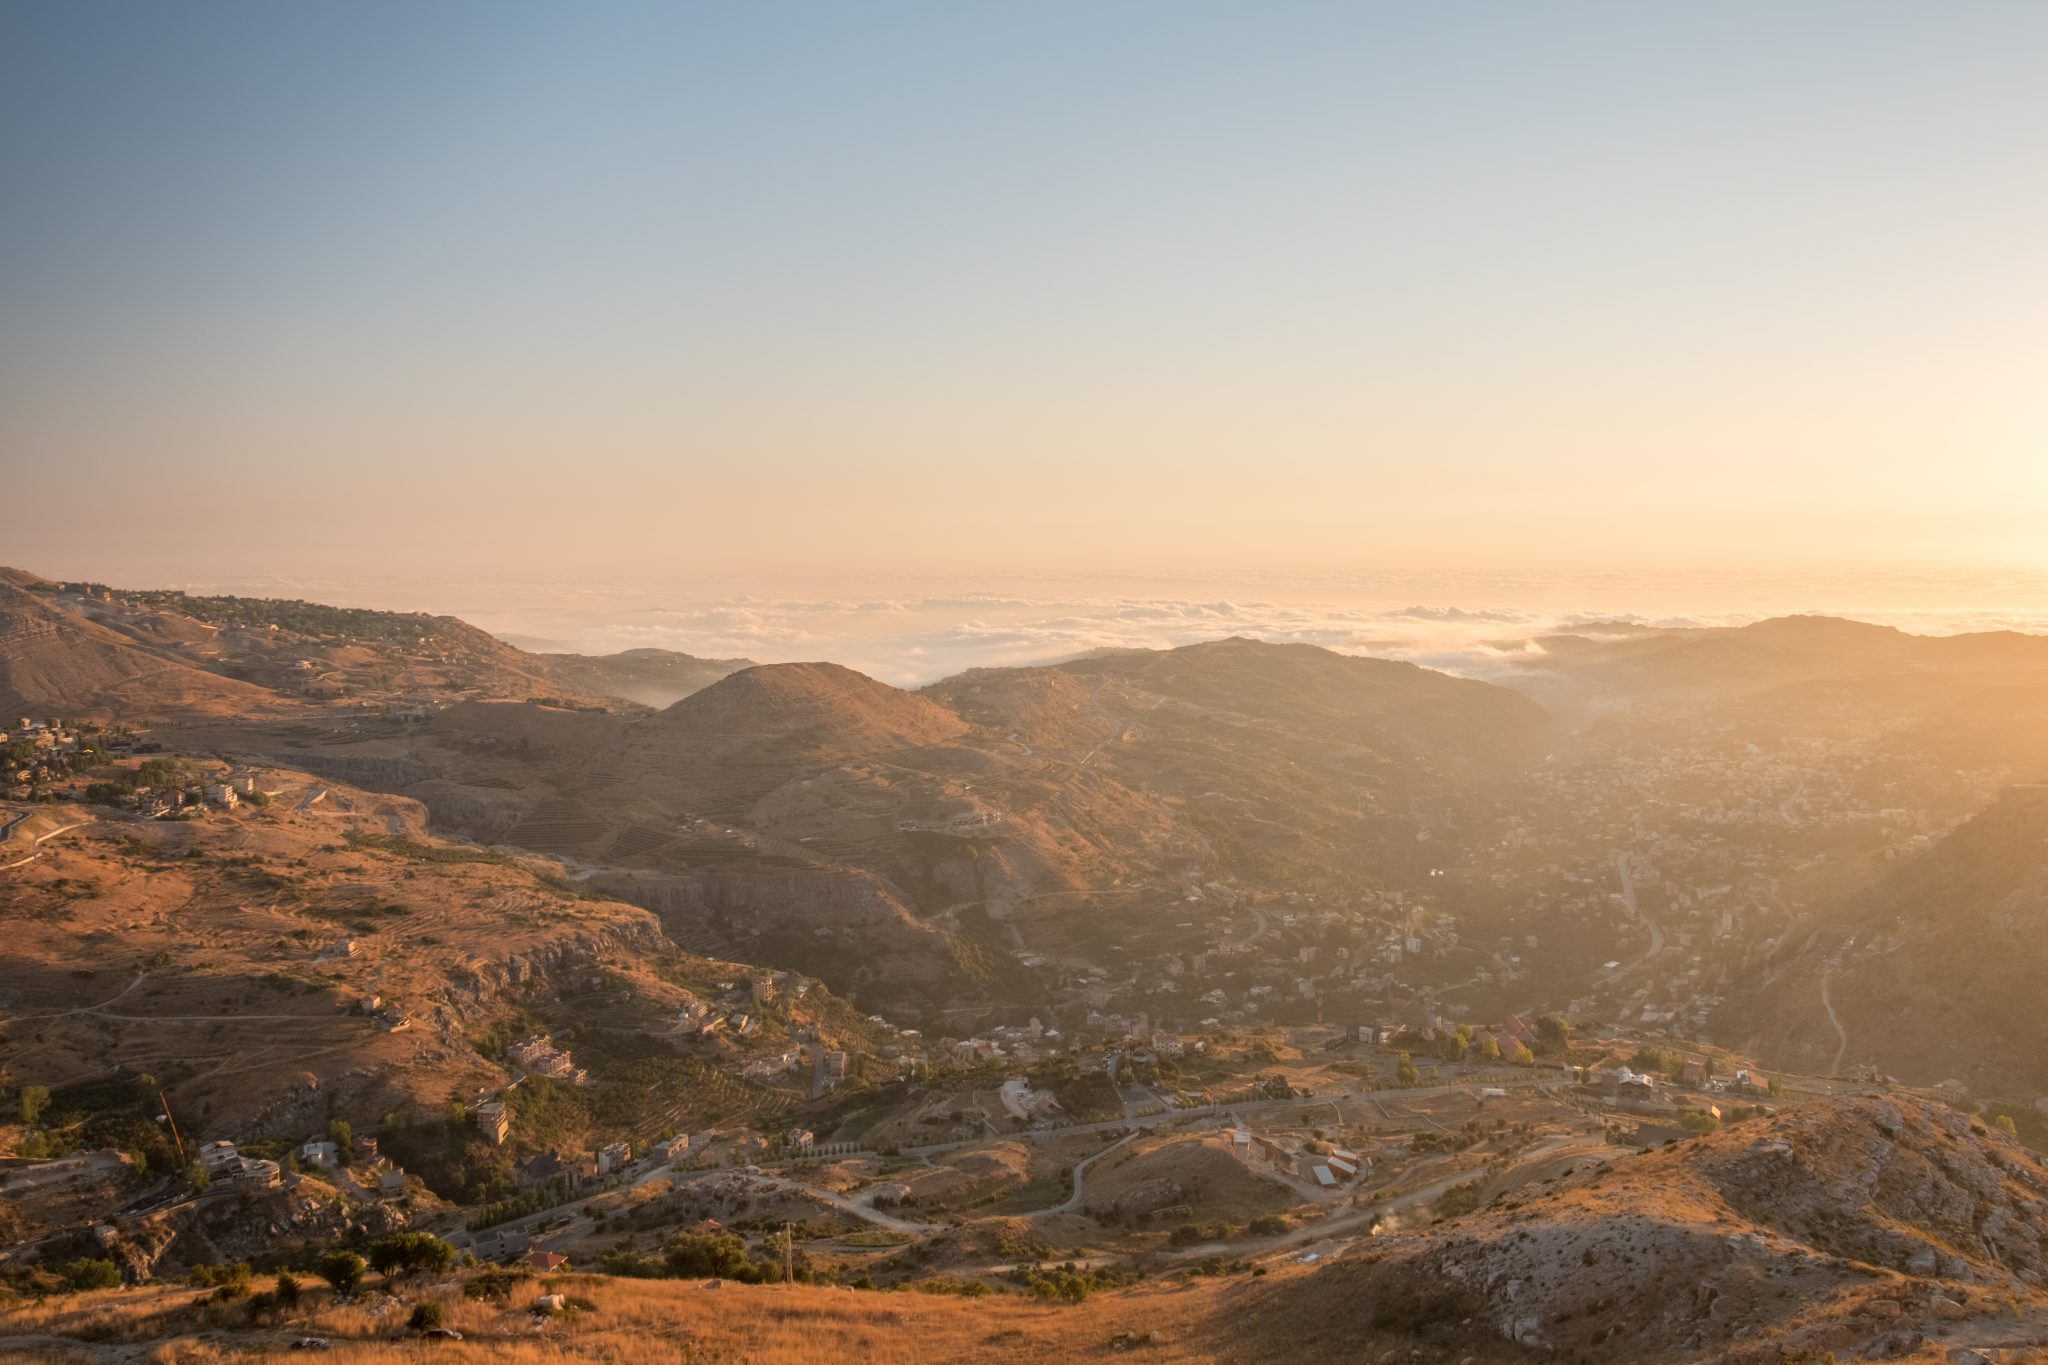 Panoramic view of the village of Faraya Hrajel in the lebanese mountain at sunset photo by Jo Kassis